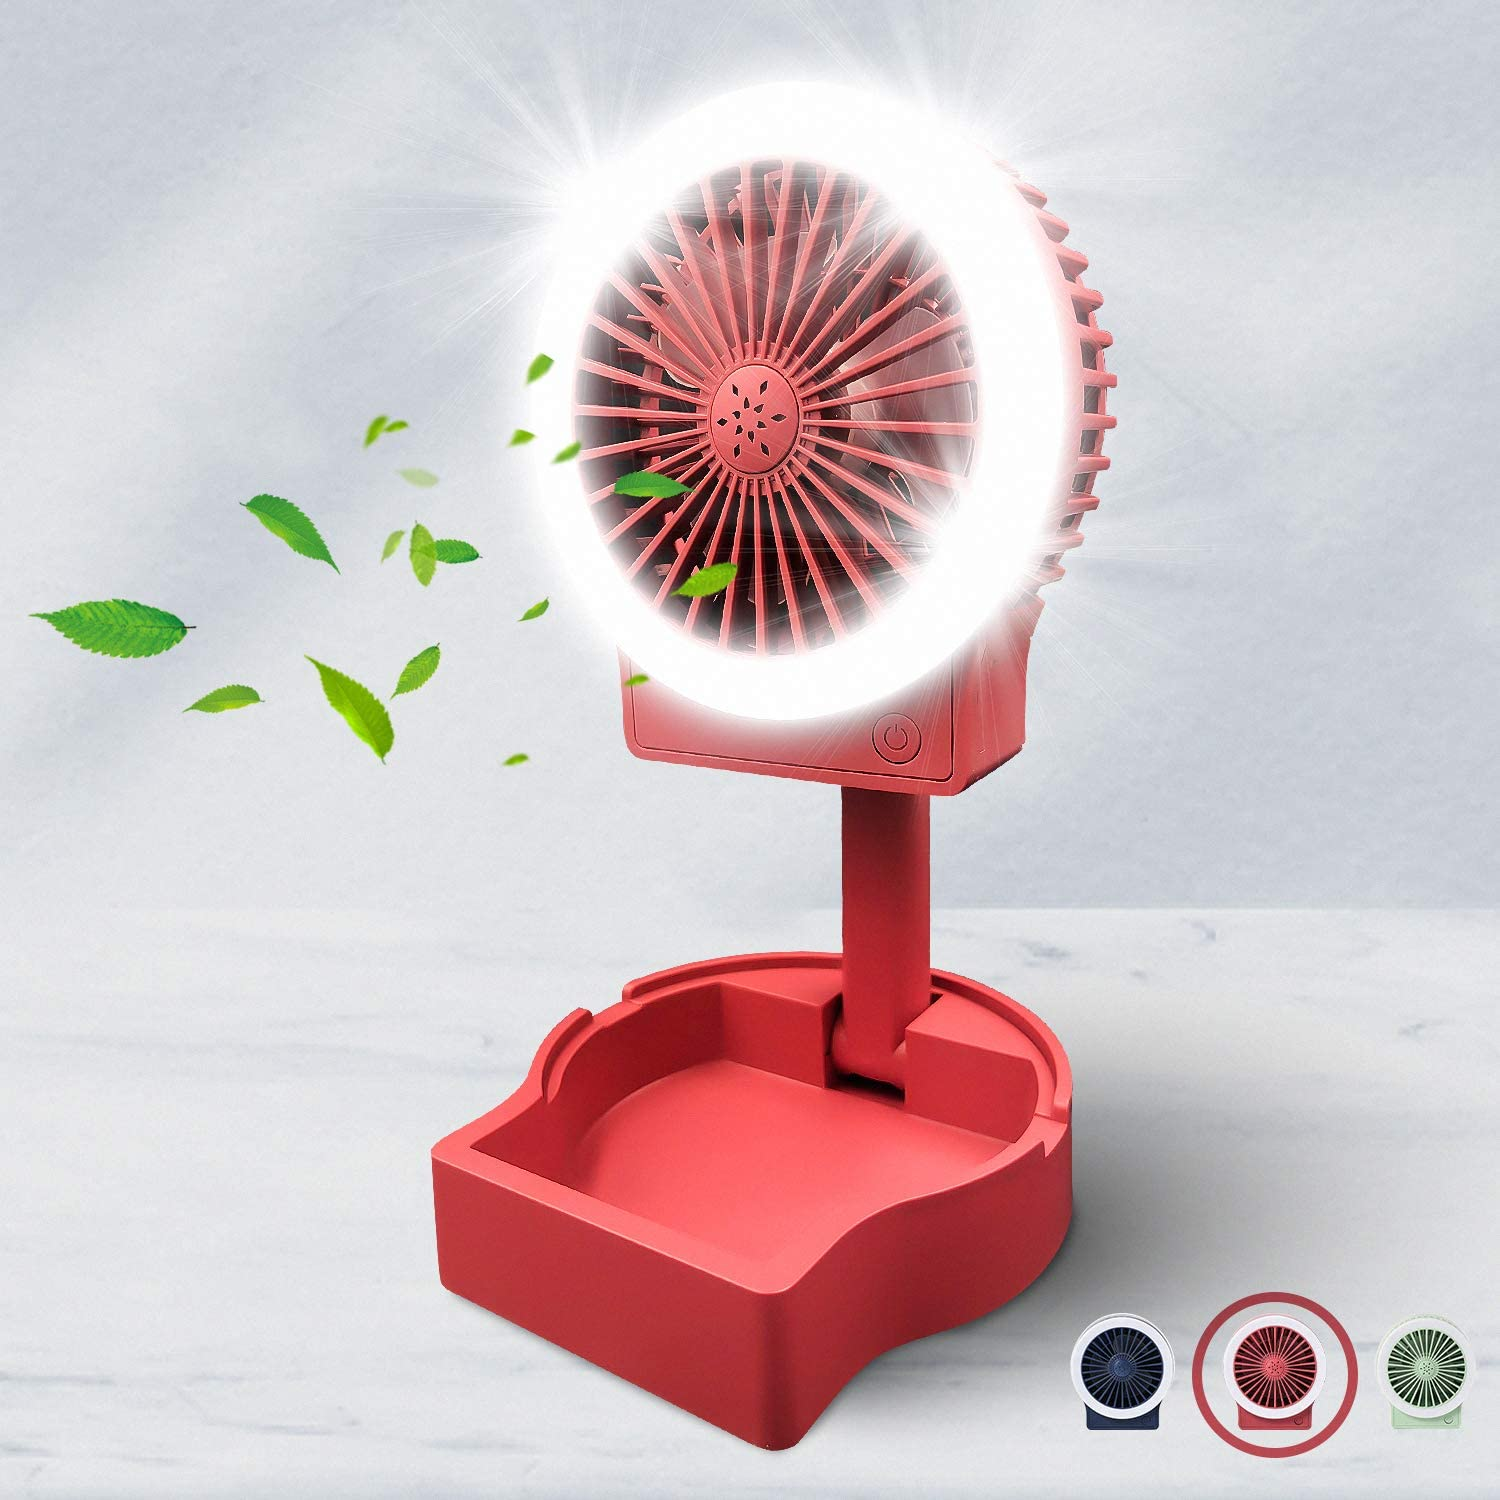 Ranking integrated 1st place Desk Small Fan with Fill Light Rechargeable 2 3 Bri USB Time sale Speeds